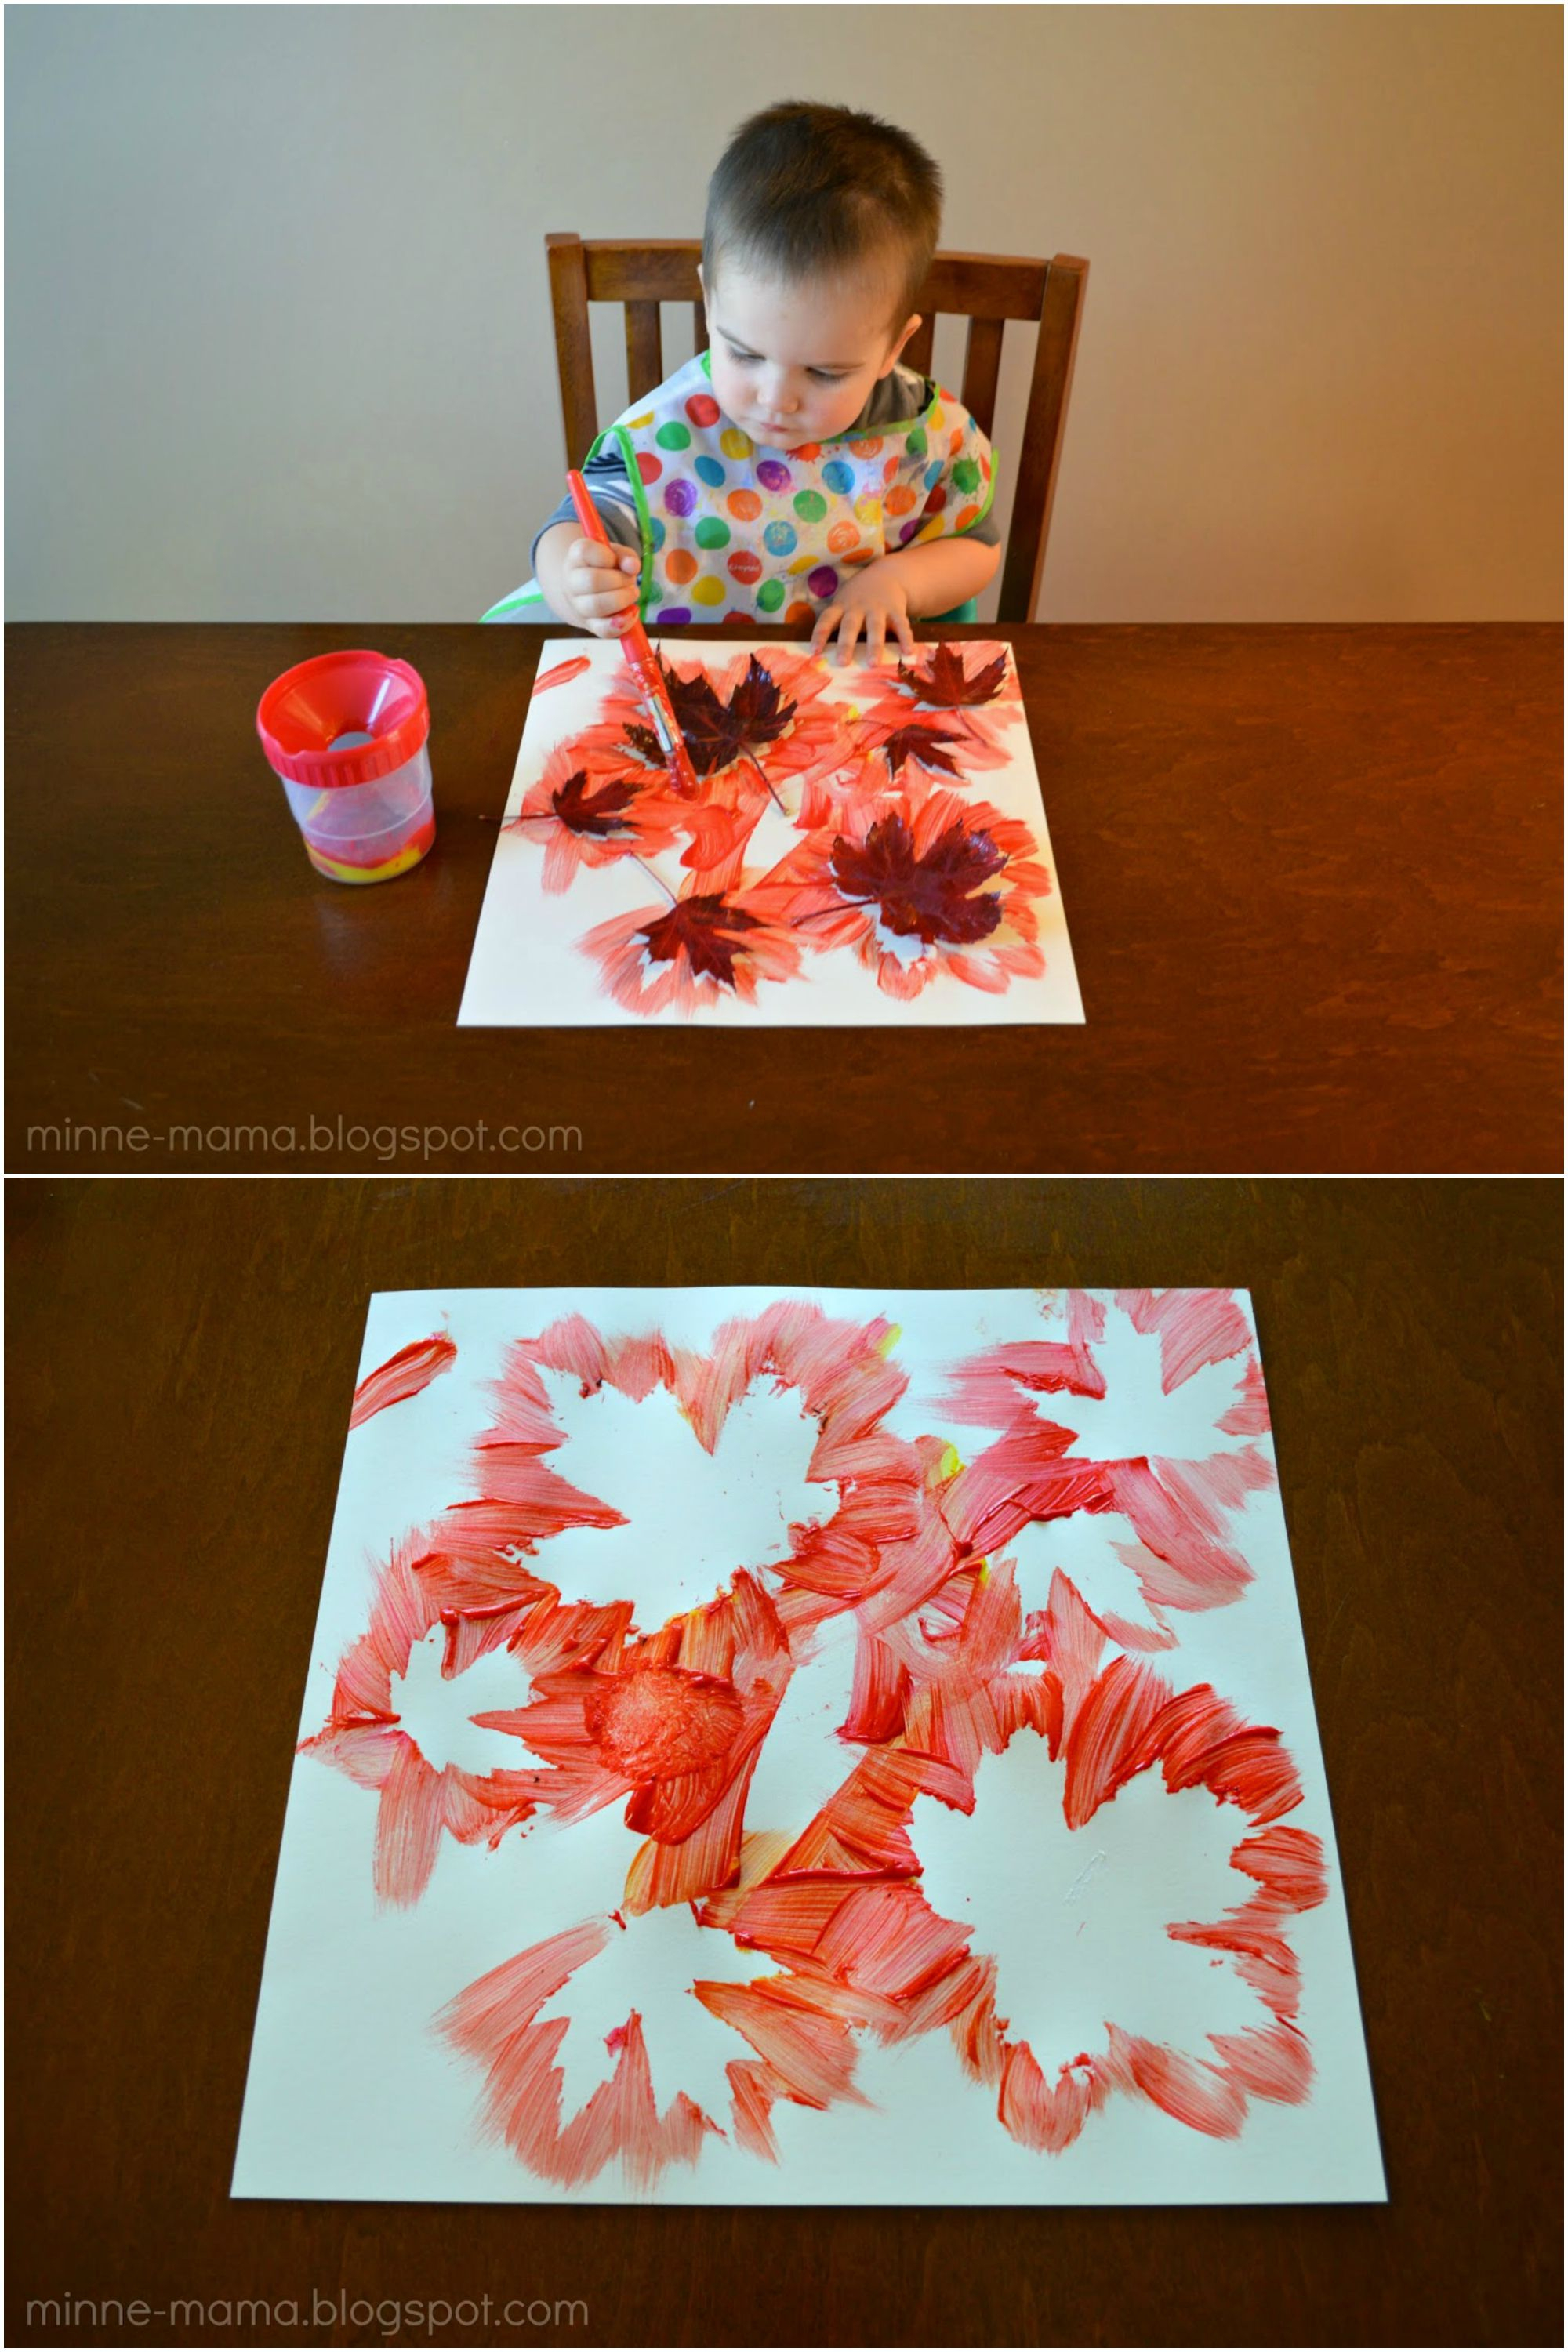 Simple and Cute Construction Paper Crafts for Kids 36 Easy Thanksgiving Crafts For Kids Thanksgiving Diy Ideas For